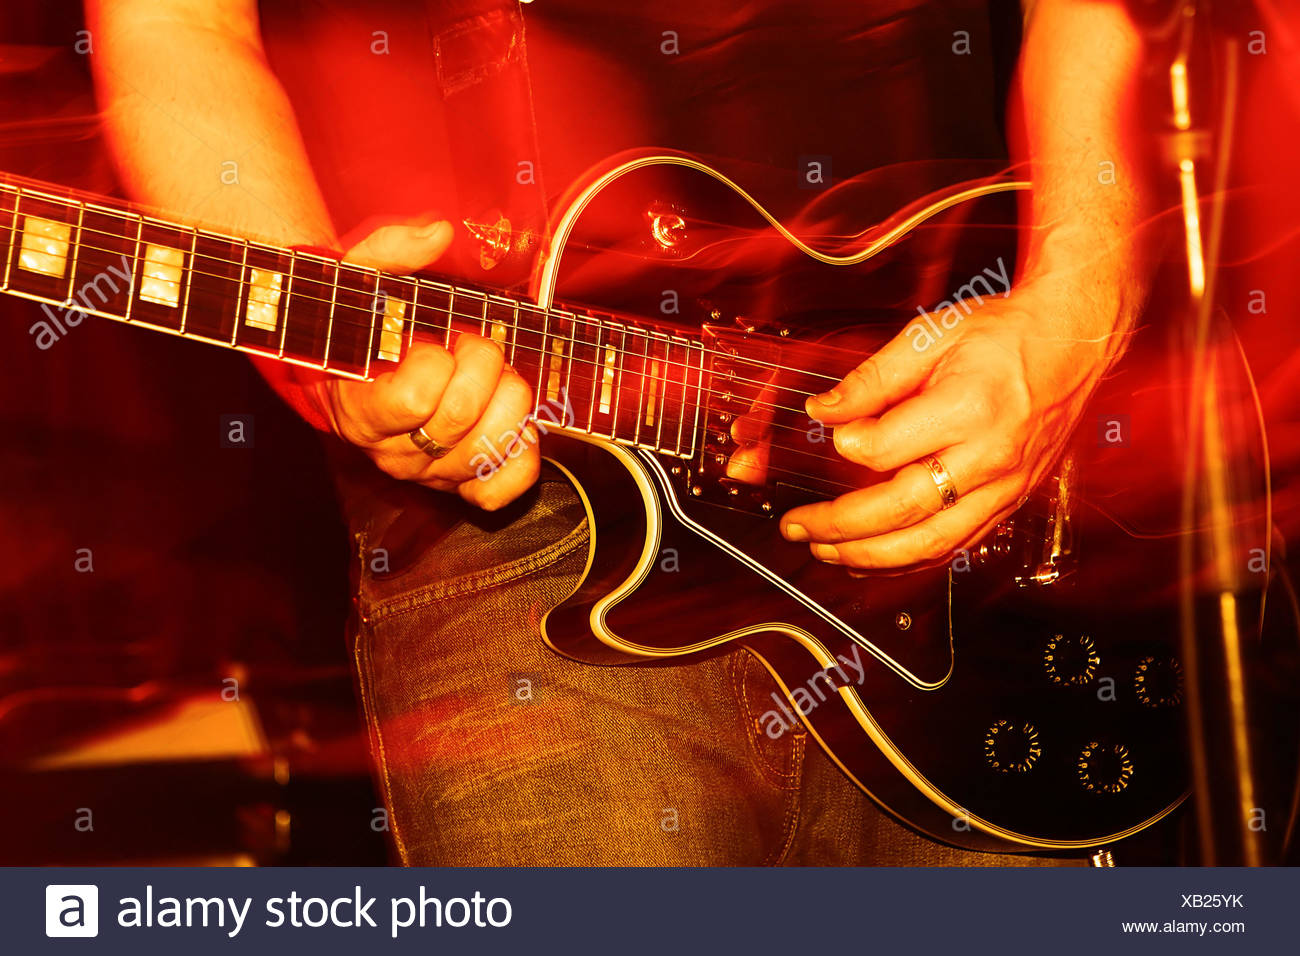 live concert - Stock Image